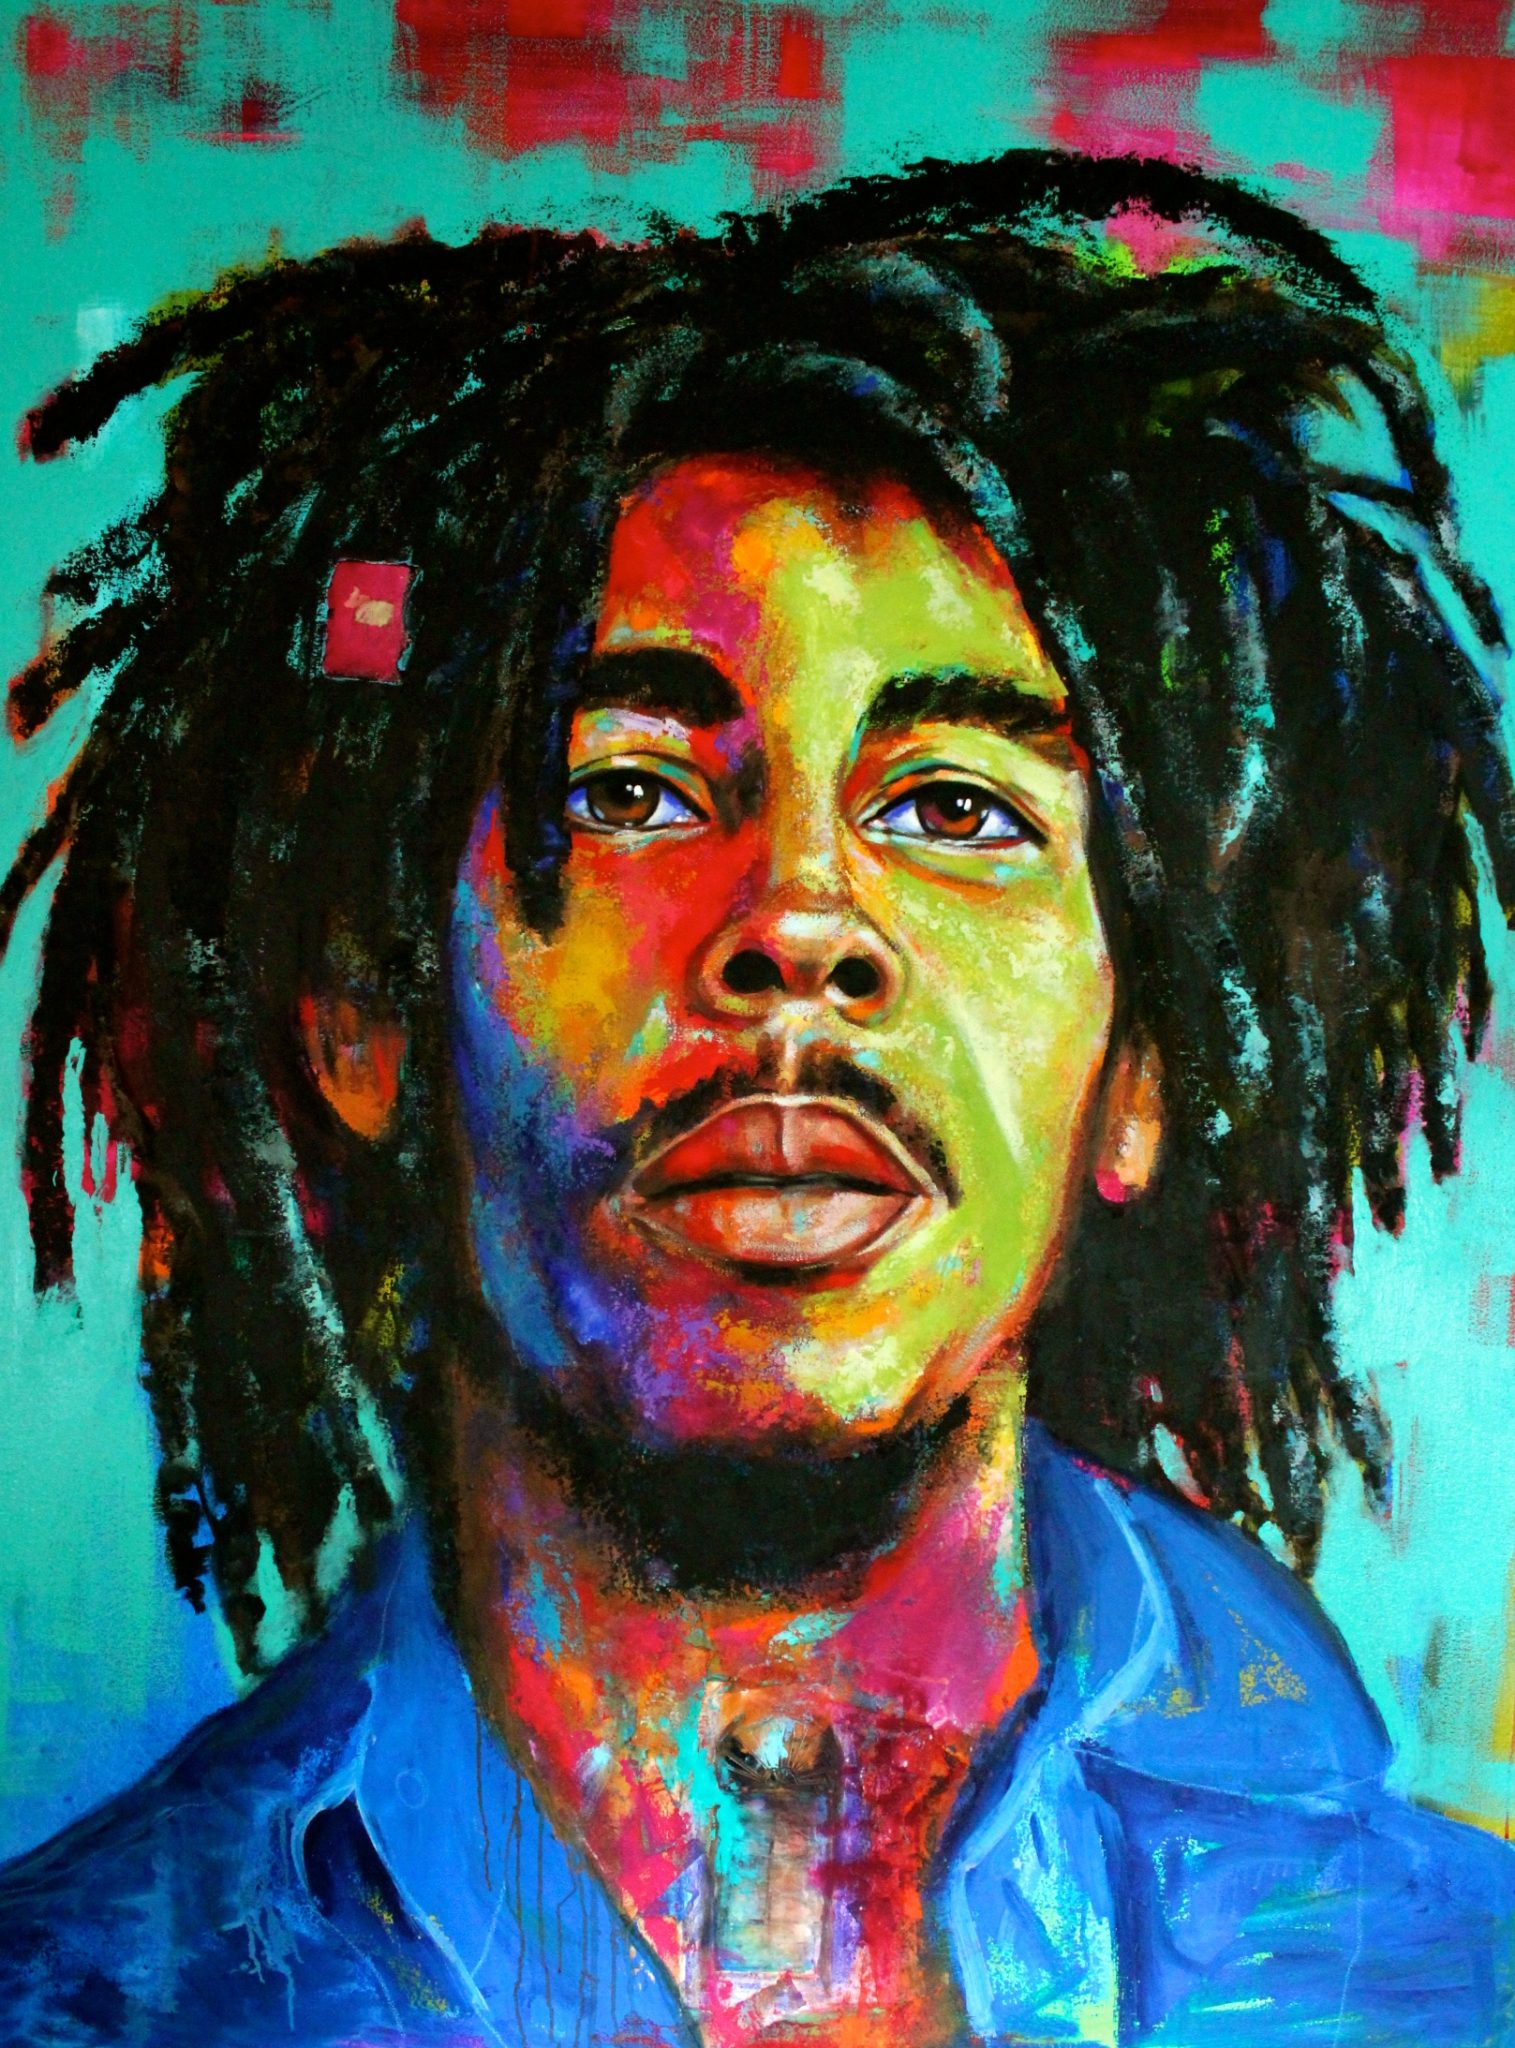 JOHN'S, Antigua, May 12, 2017 – When artist Naydene Gonnella set out last year to paint the portrait of the legendary reggae artist Bob Marley, ...